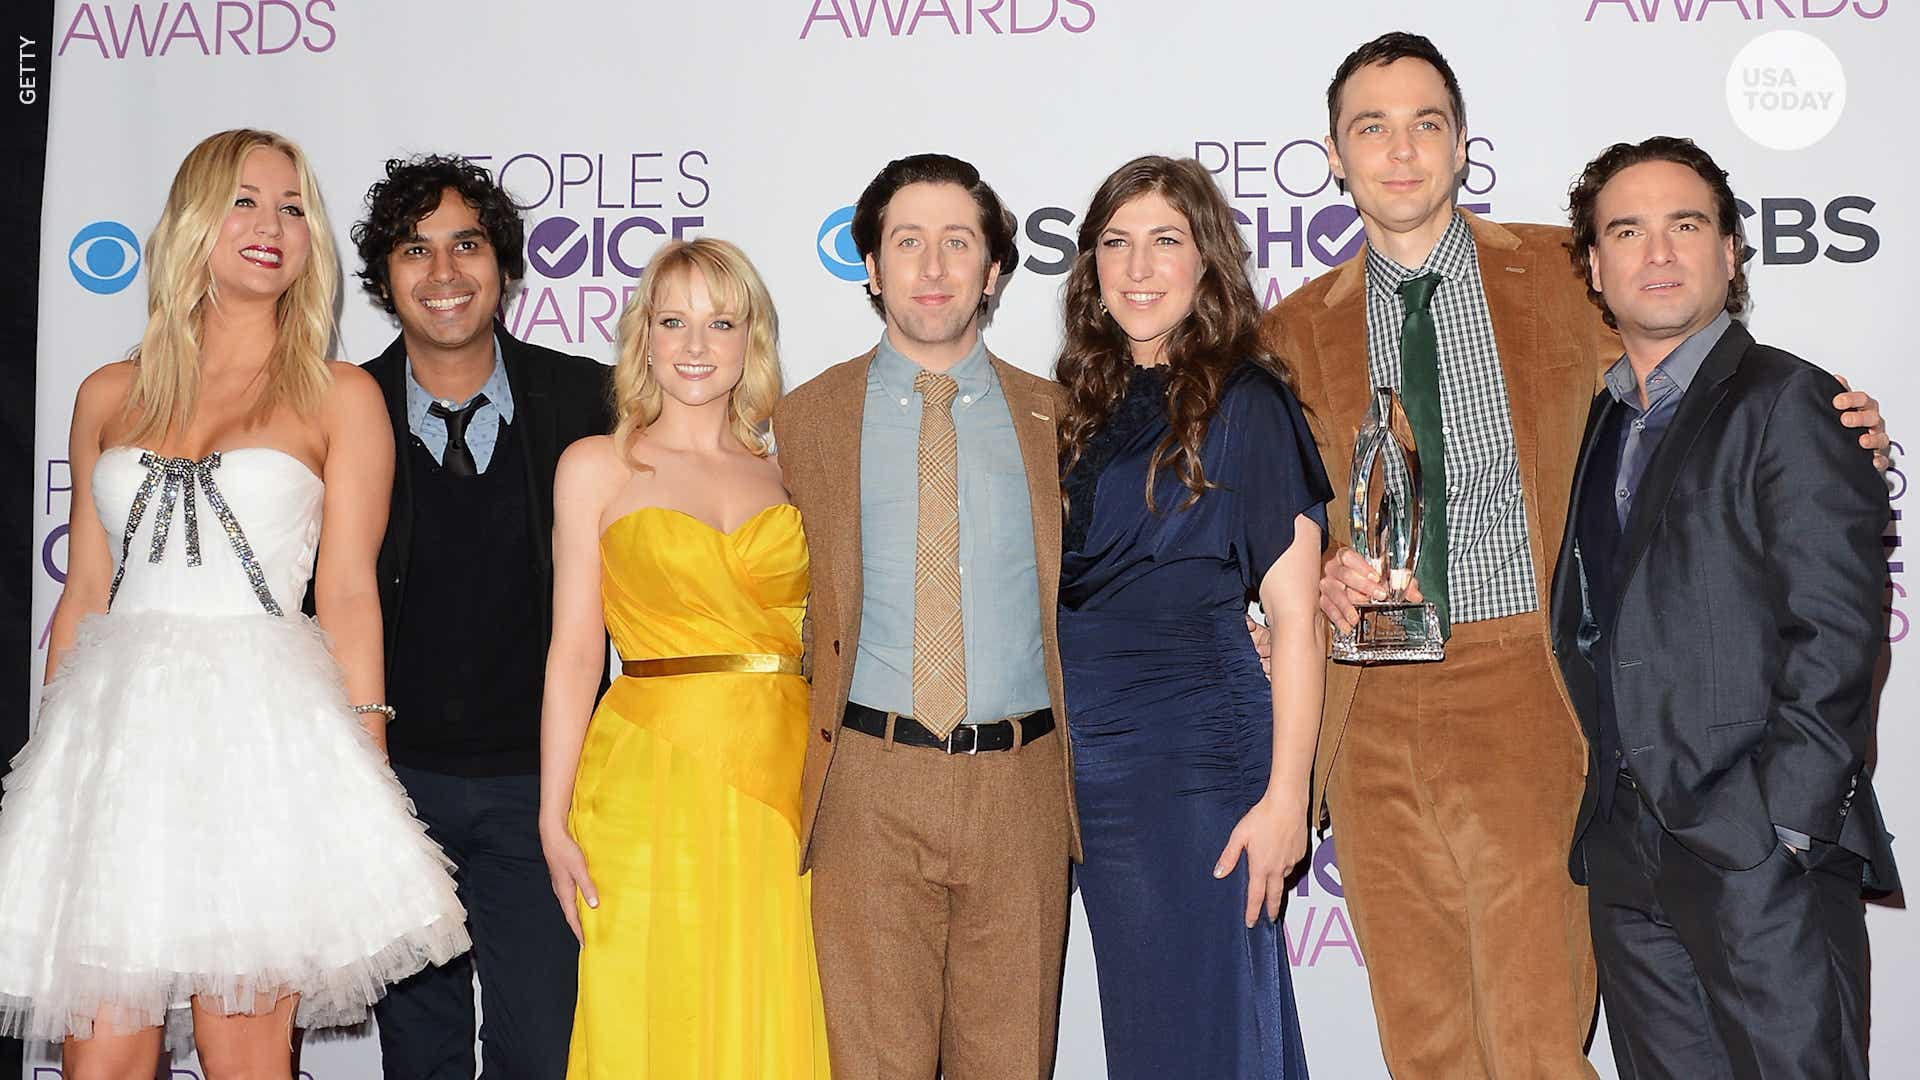 'Big Bang Theory' is coming to an end